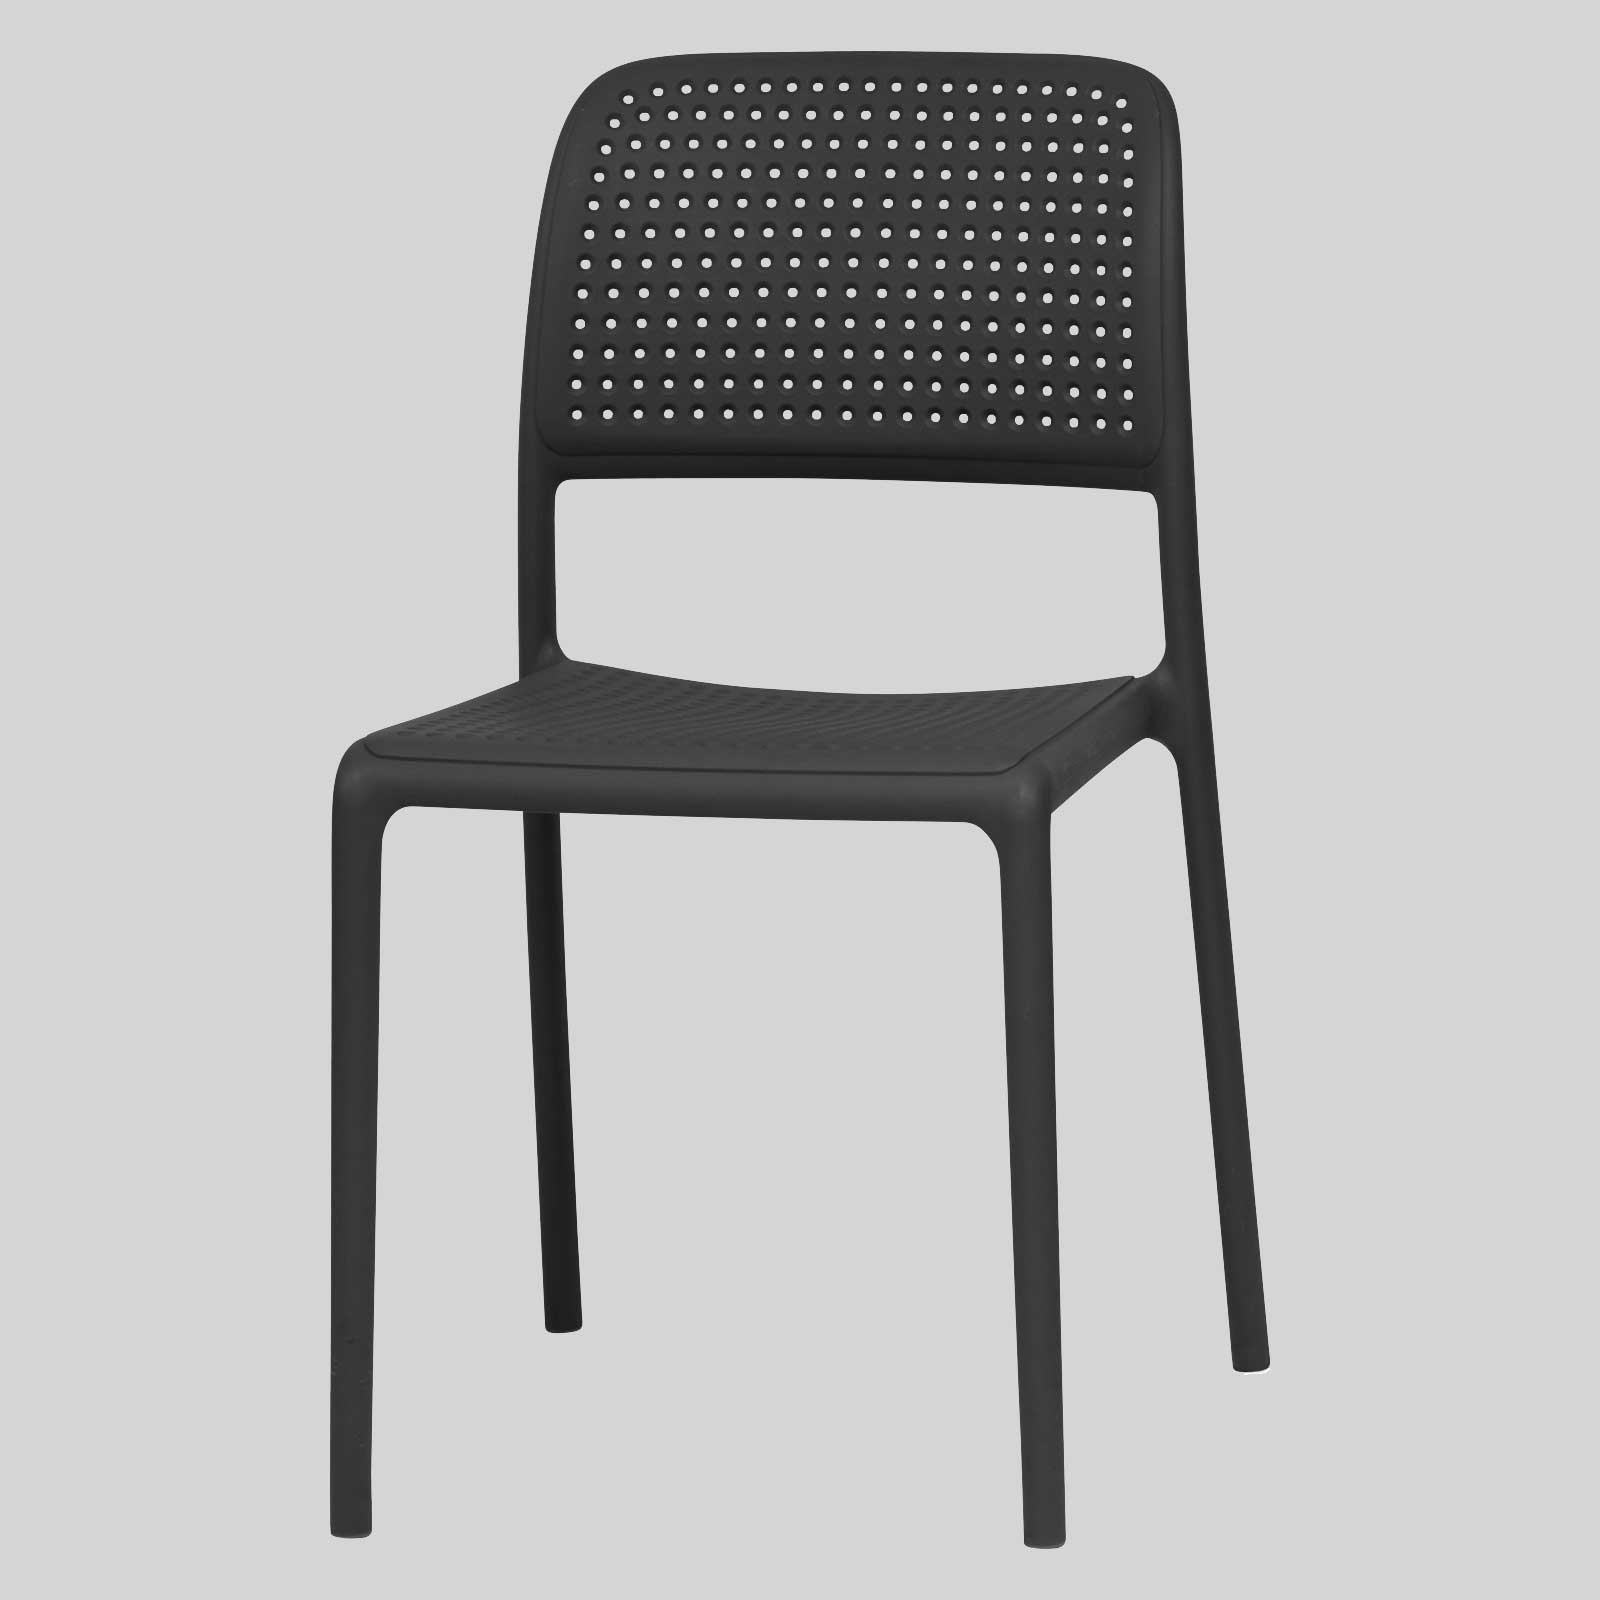 Plastic Chairs for Outdoor Venues Dora